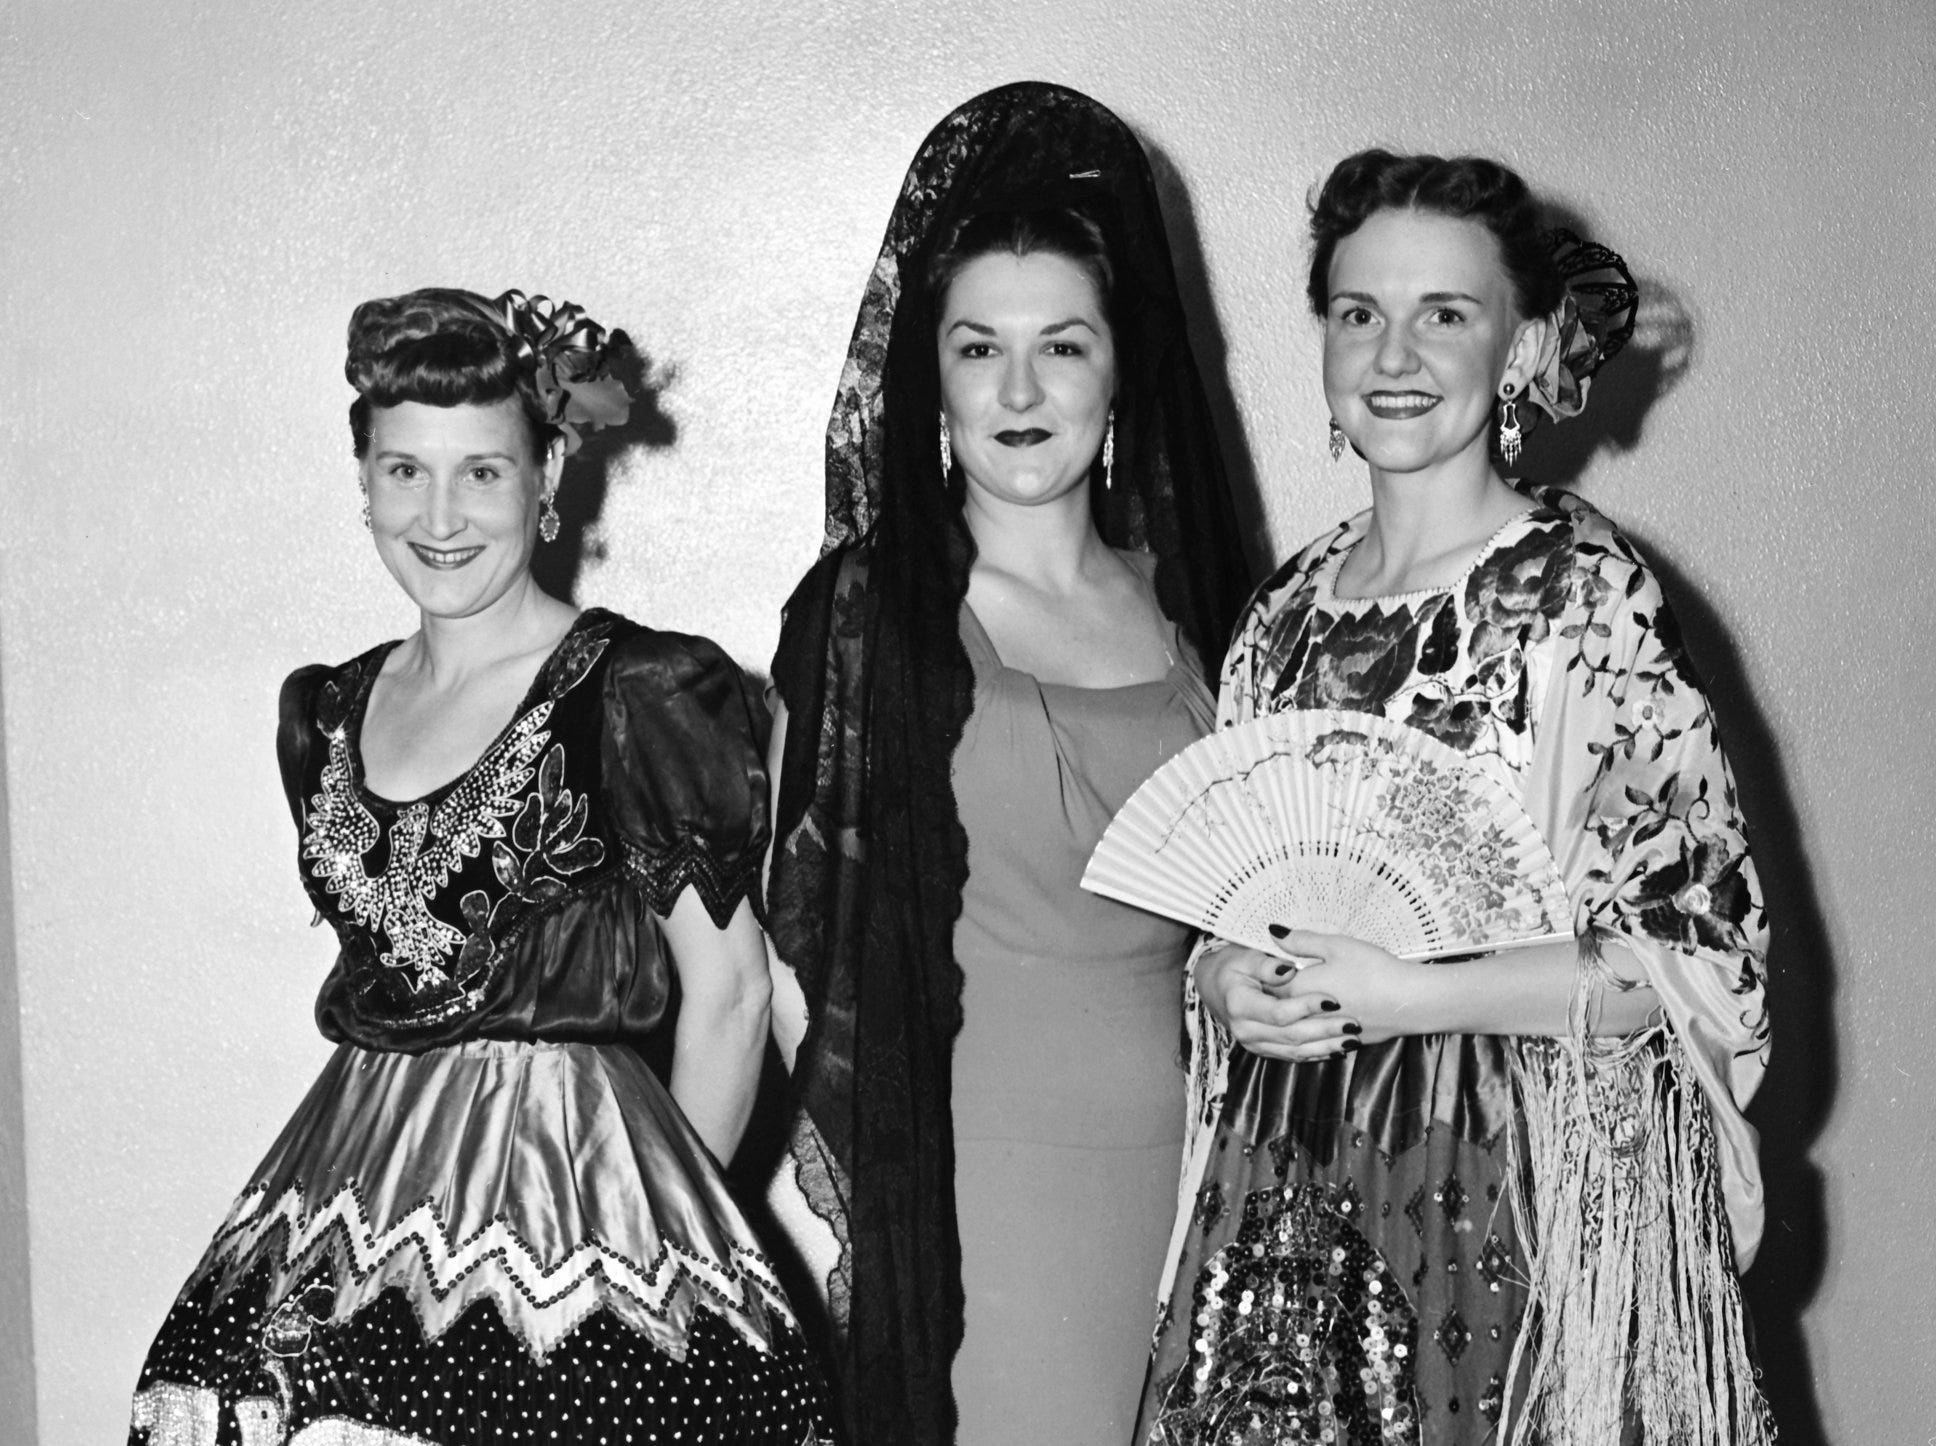 Fiesta finery was in fashion at Trinity Methodist Church in October 1951.  Among more than a score who dressed up to bring life to a study of Latin American missions were Mrs. W.K. Bradley (Left) of 1765 Crump; Mrs. Turner Morehead Jr. (Center) of 53 East Norwood and Mrs. Kenneth E. McRae Jr. of 2854 Spottswood.  Sponsor was the Woman's Society of Christian Service.